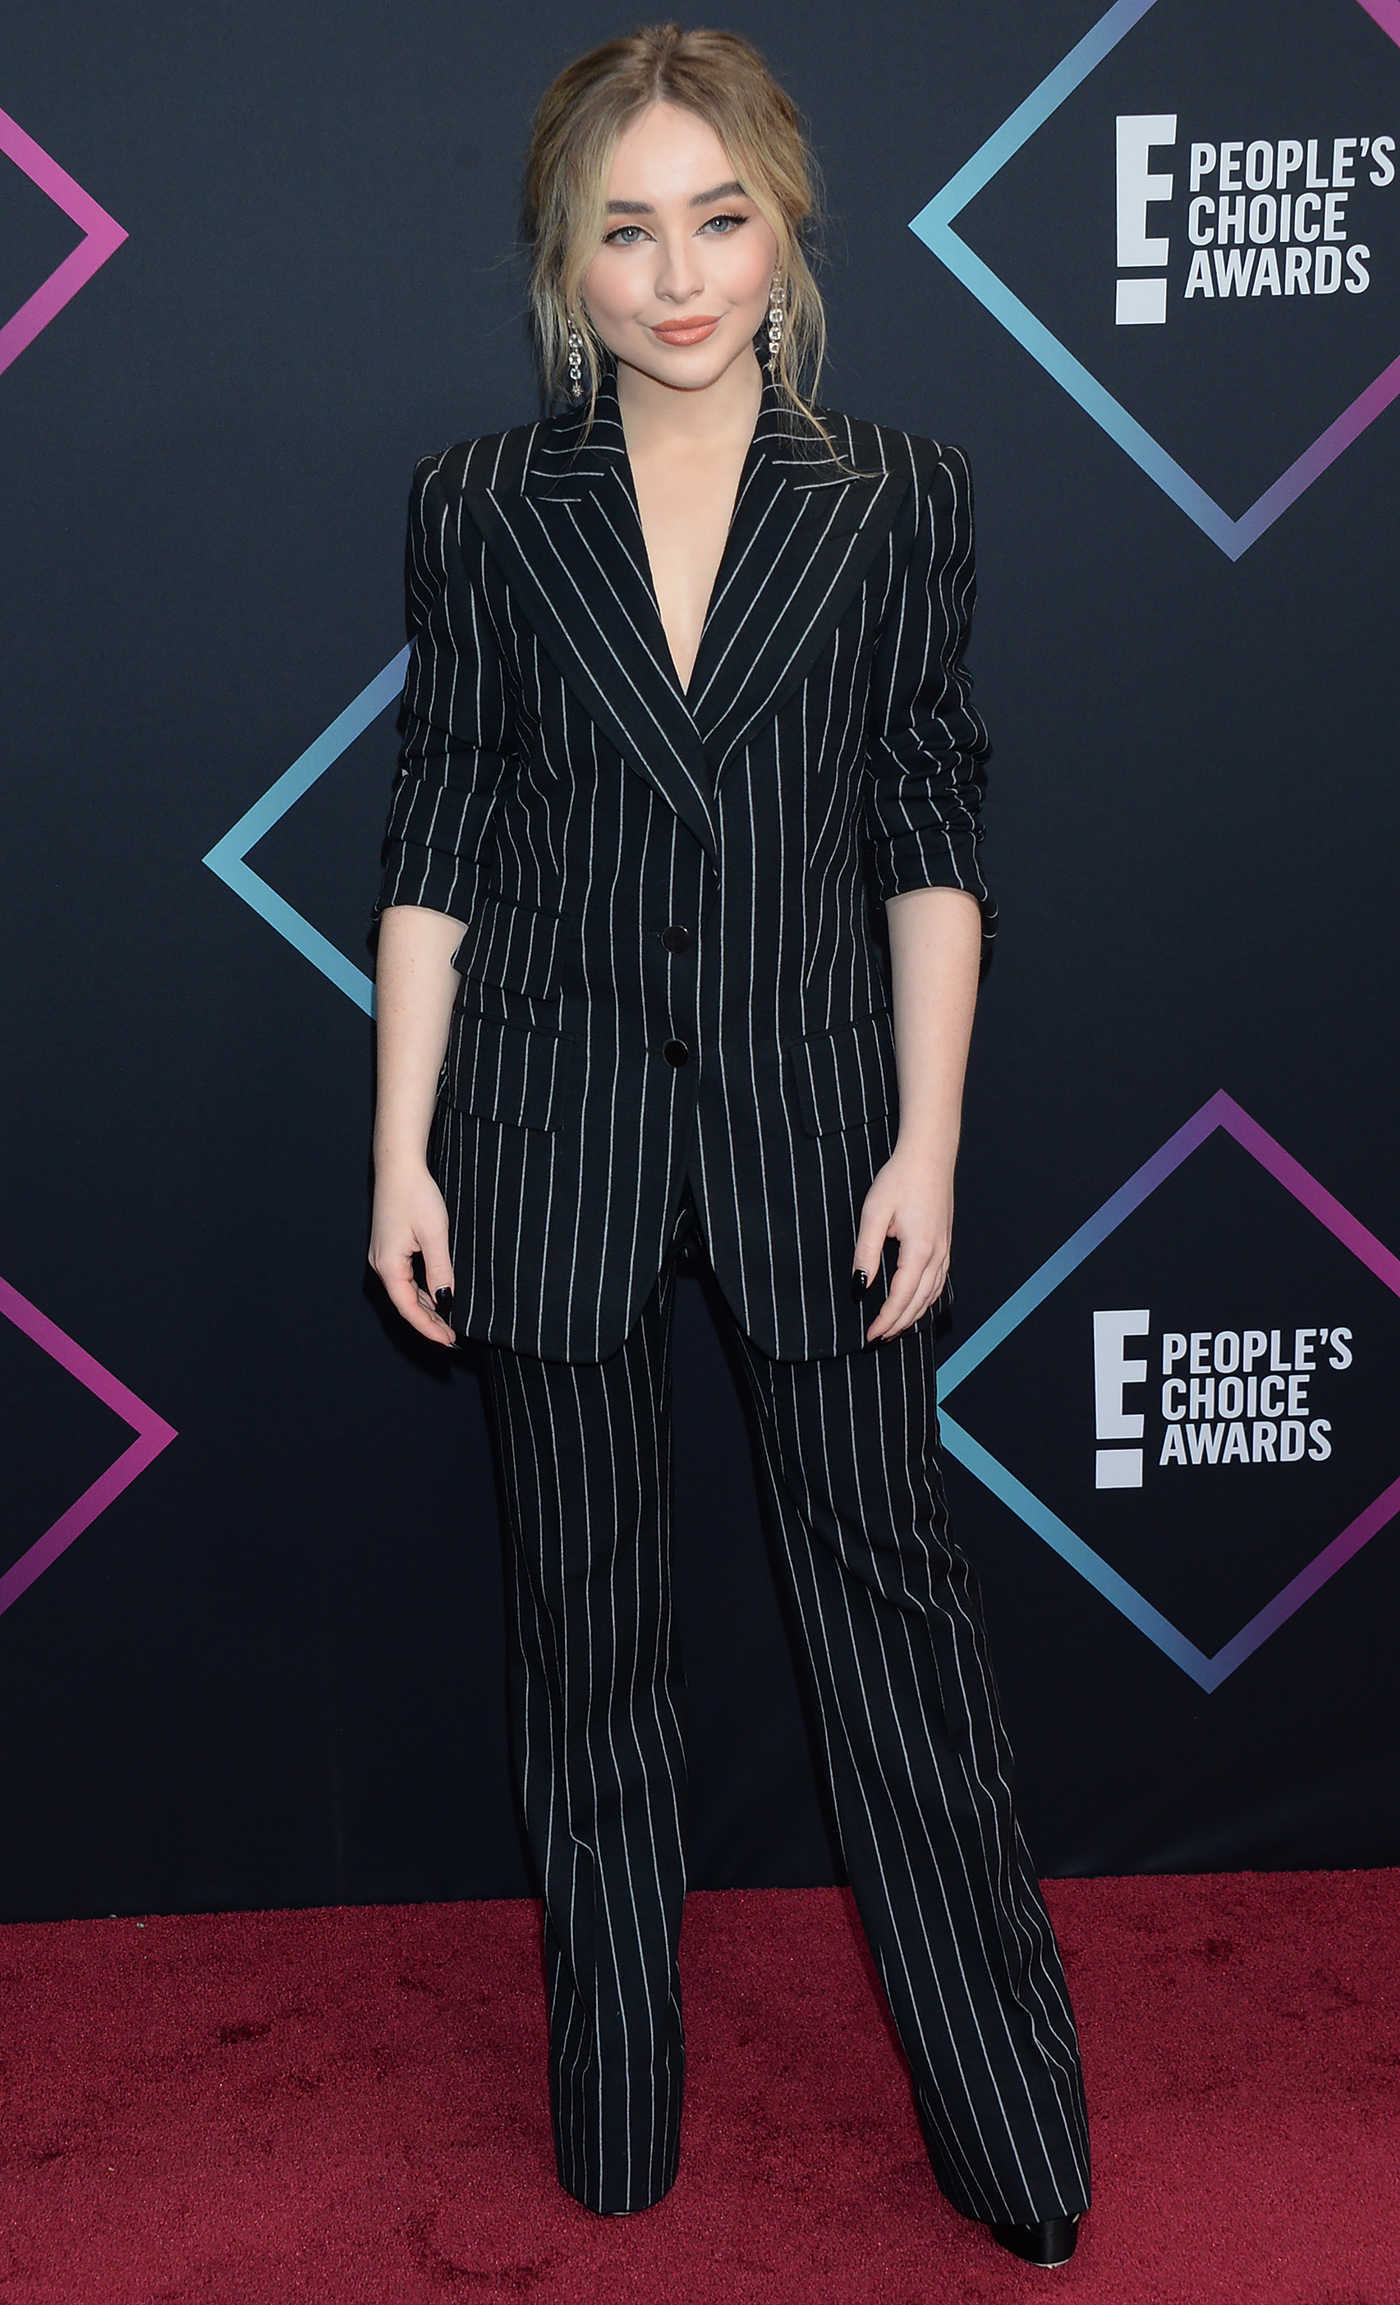 Sabrina Carpenter Attends 2018 People's Choice Awards in Santa Monica 11/11/2018